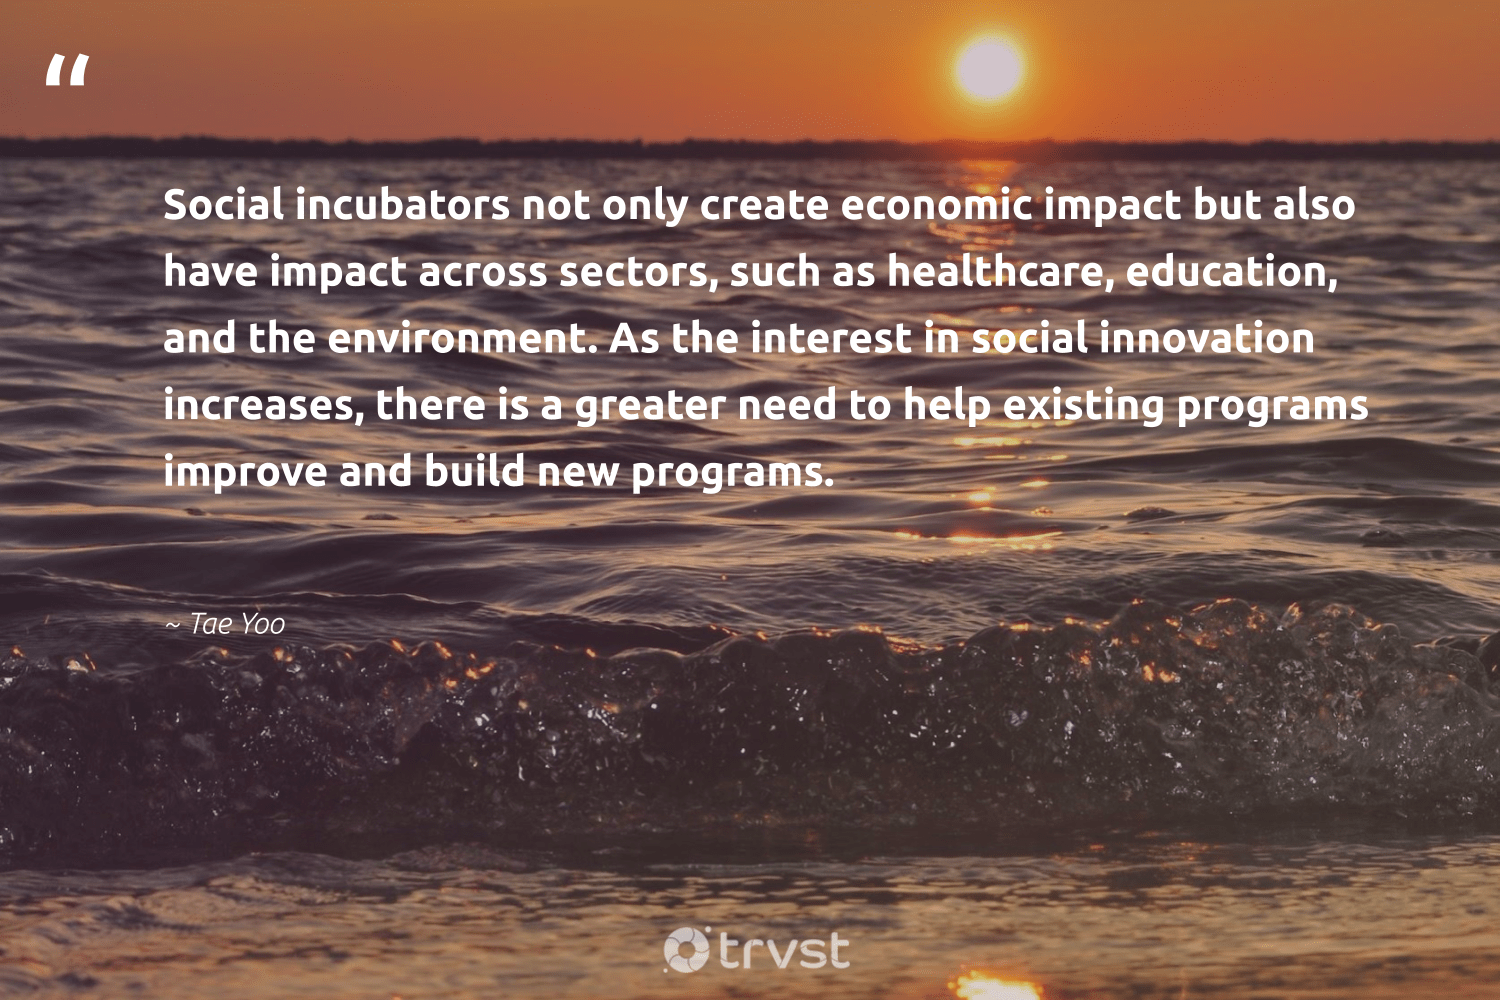 """""""Social incubators not only create economic impact but also have impact across sectors, such as healthcare, education, and the environment. As the interest in social innovation increases, there is a greater need to help existing programs improve and build new programs.""""  - Tae Yoo #trvst #quotes #impact #environment #socialinnovation #education #planet #makeadifference #eco #socialchange #mothernature #dogood"""